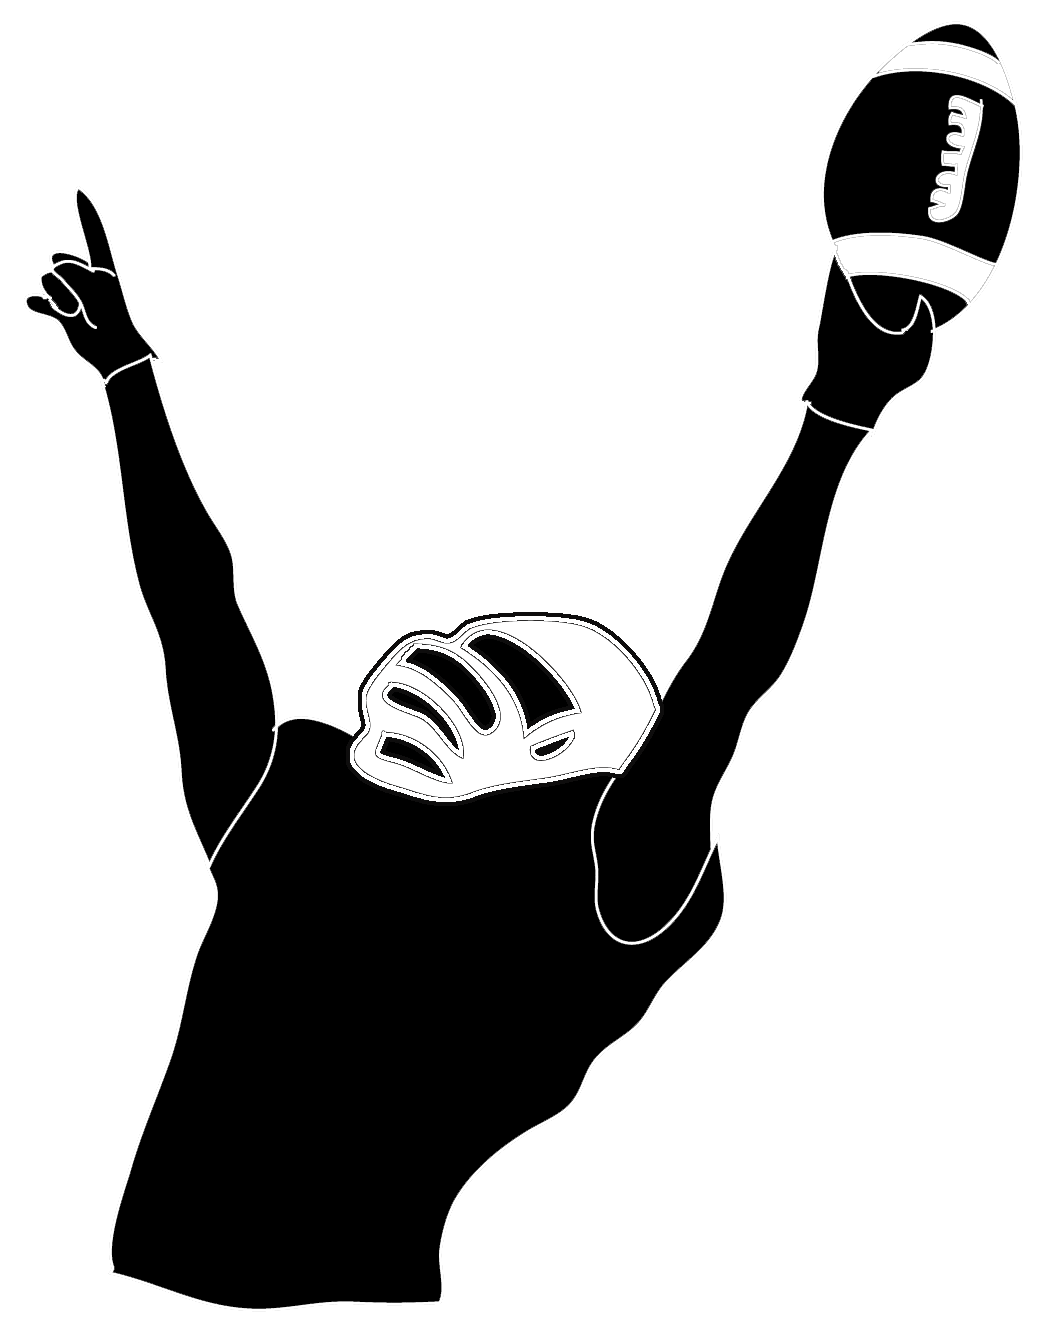 Kneeling football player clipart graphic black and white download Football player clipart 2 football player clip art black image 2 ... graphic black and white download